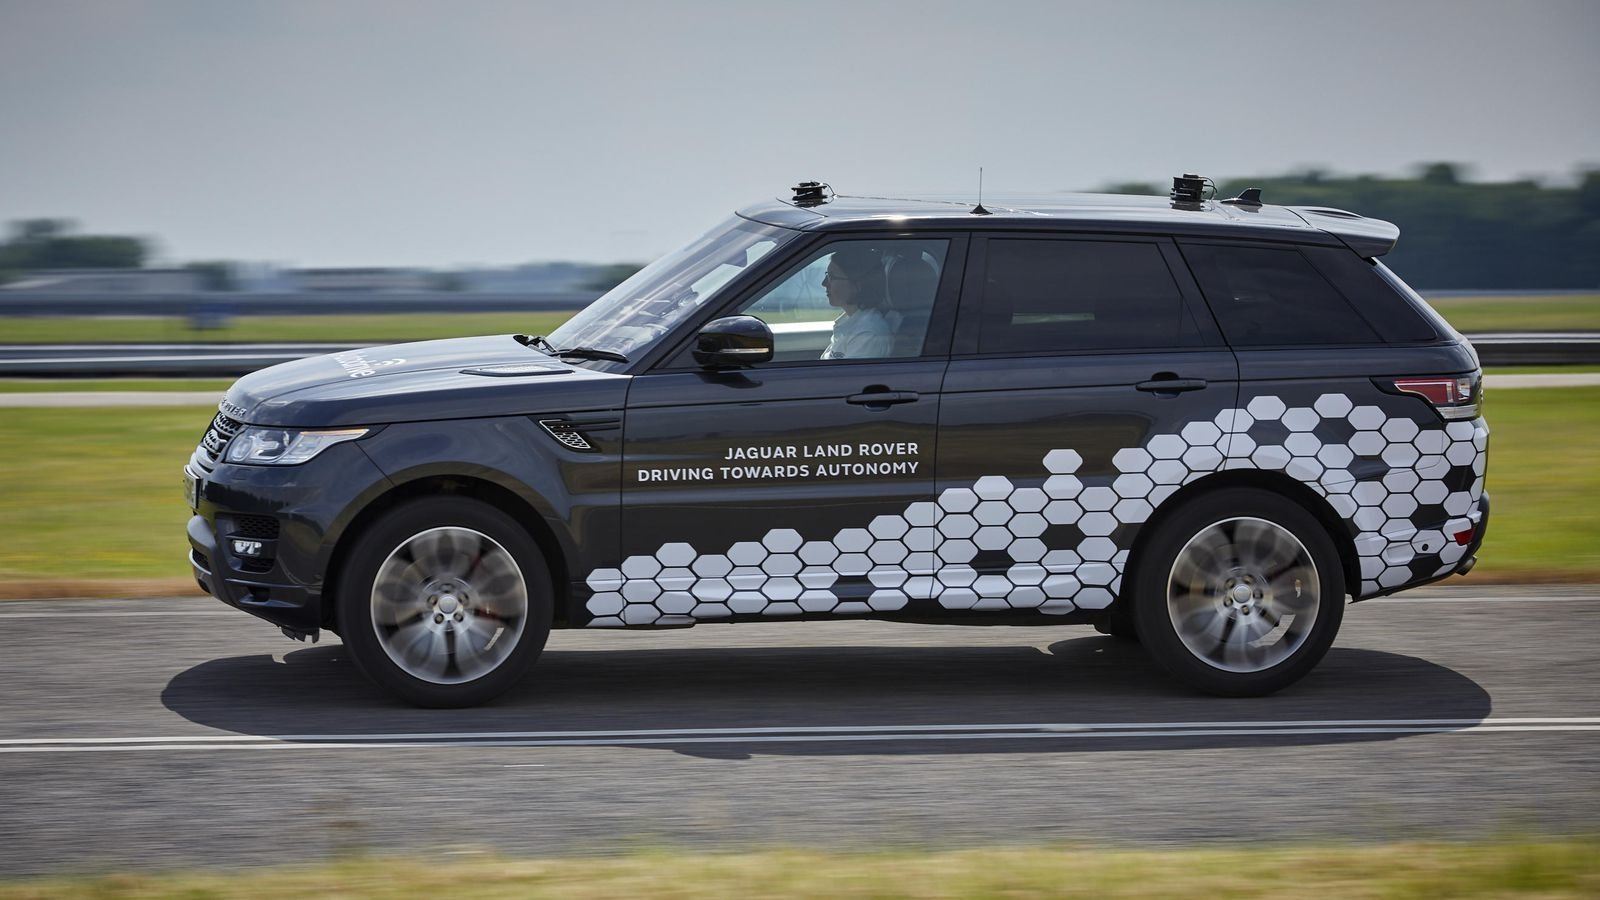 Latest Jaguar Land Rover Self Driving Cars Hit Real Roads For Free Download